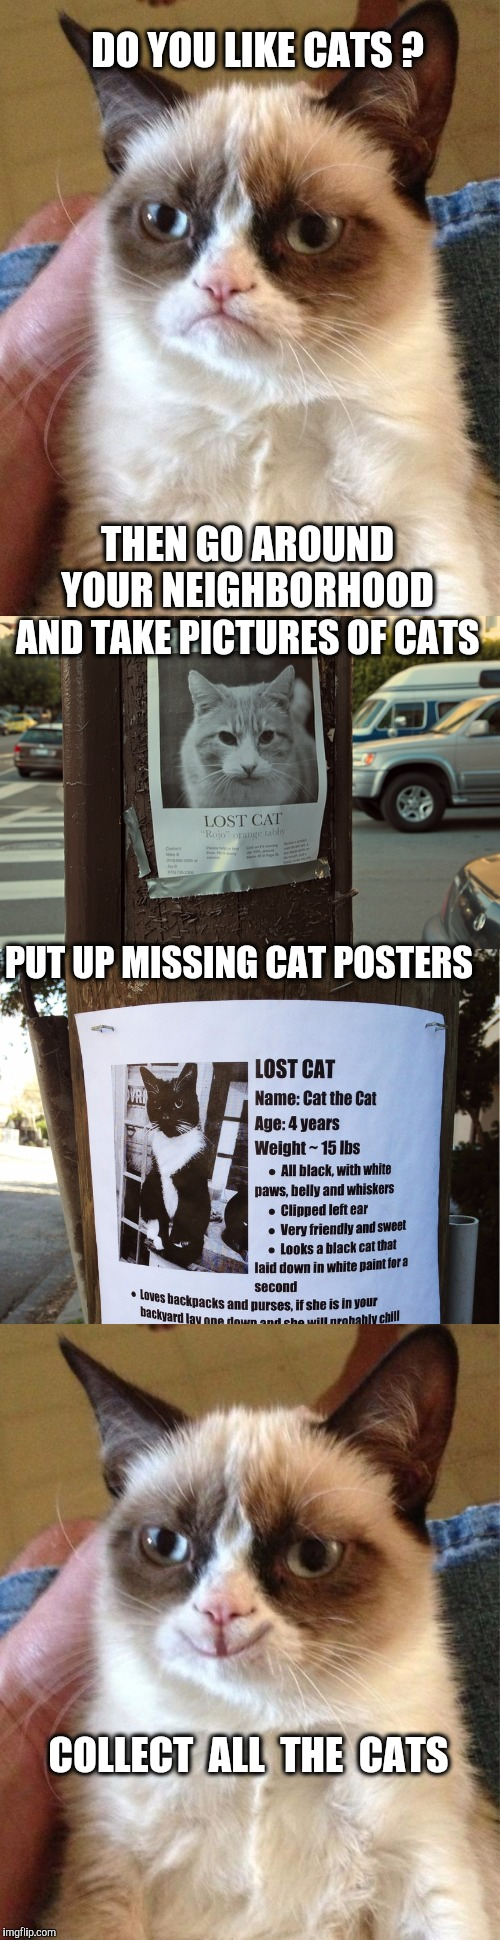 Very Simple Formula to a Cat filled Life  | DO YOU LIKE CATS ? THEN GO AROUND YOUR NEIGHBORHOOD AND TAKE PICTURES OF CATS PUT UP MISSING CAT POSTERS COLLECT  ALL  THE  CATS | image tagged in cats,grumpy cat,happy grumpy cat,crazy cat lady | made w/ Imgflip meme maker